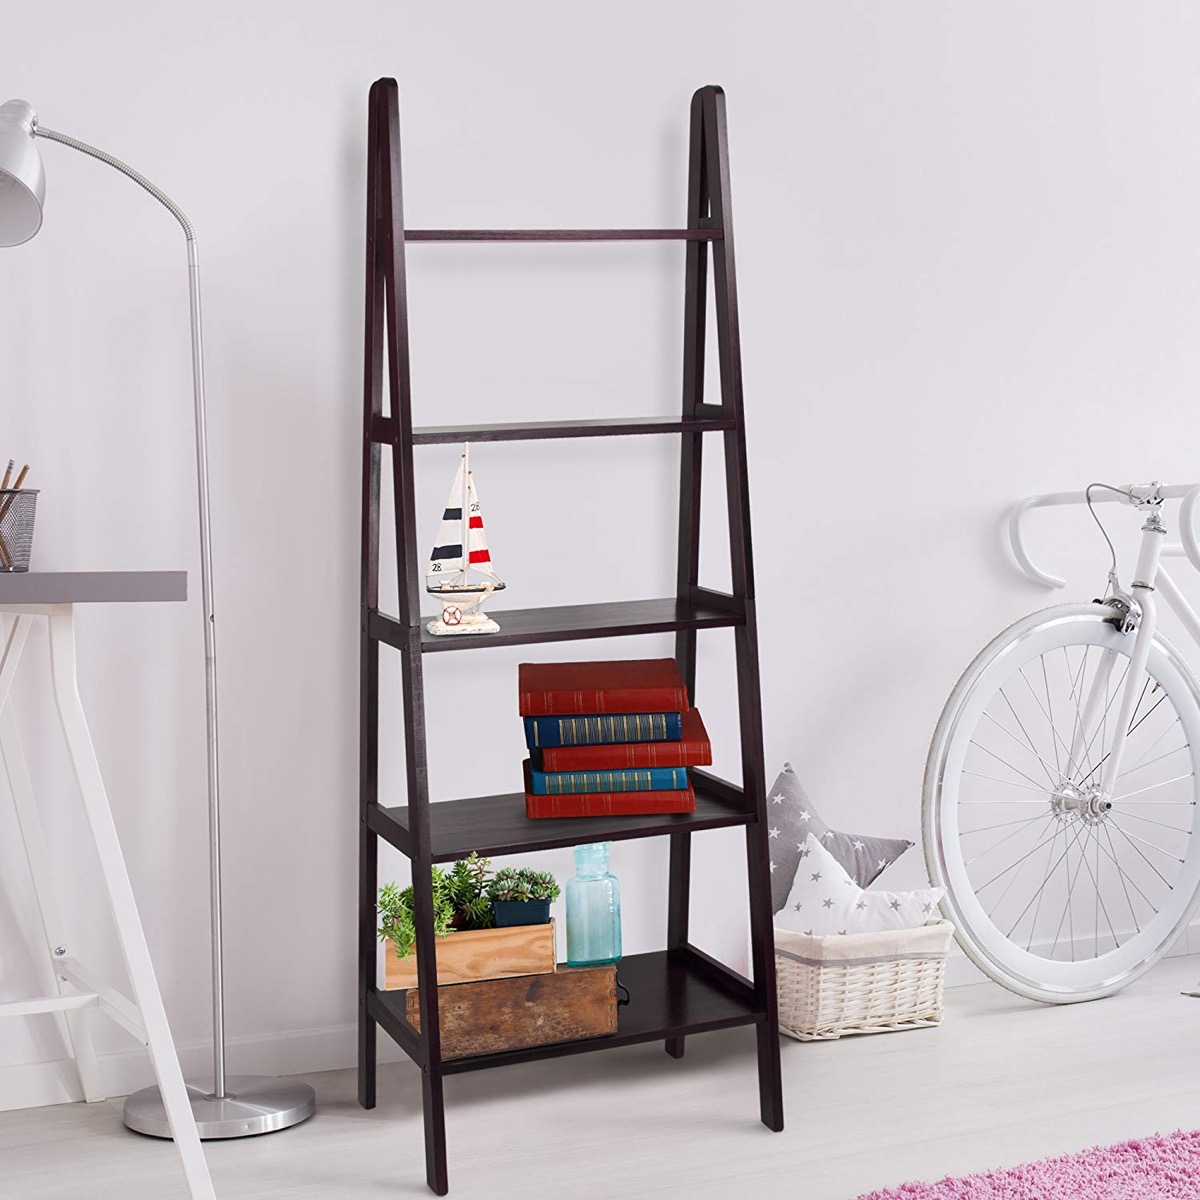 espresso-ladder-shelf-for-modern-interior-storage-living-room-bedroom-office